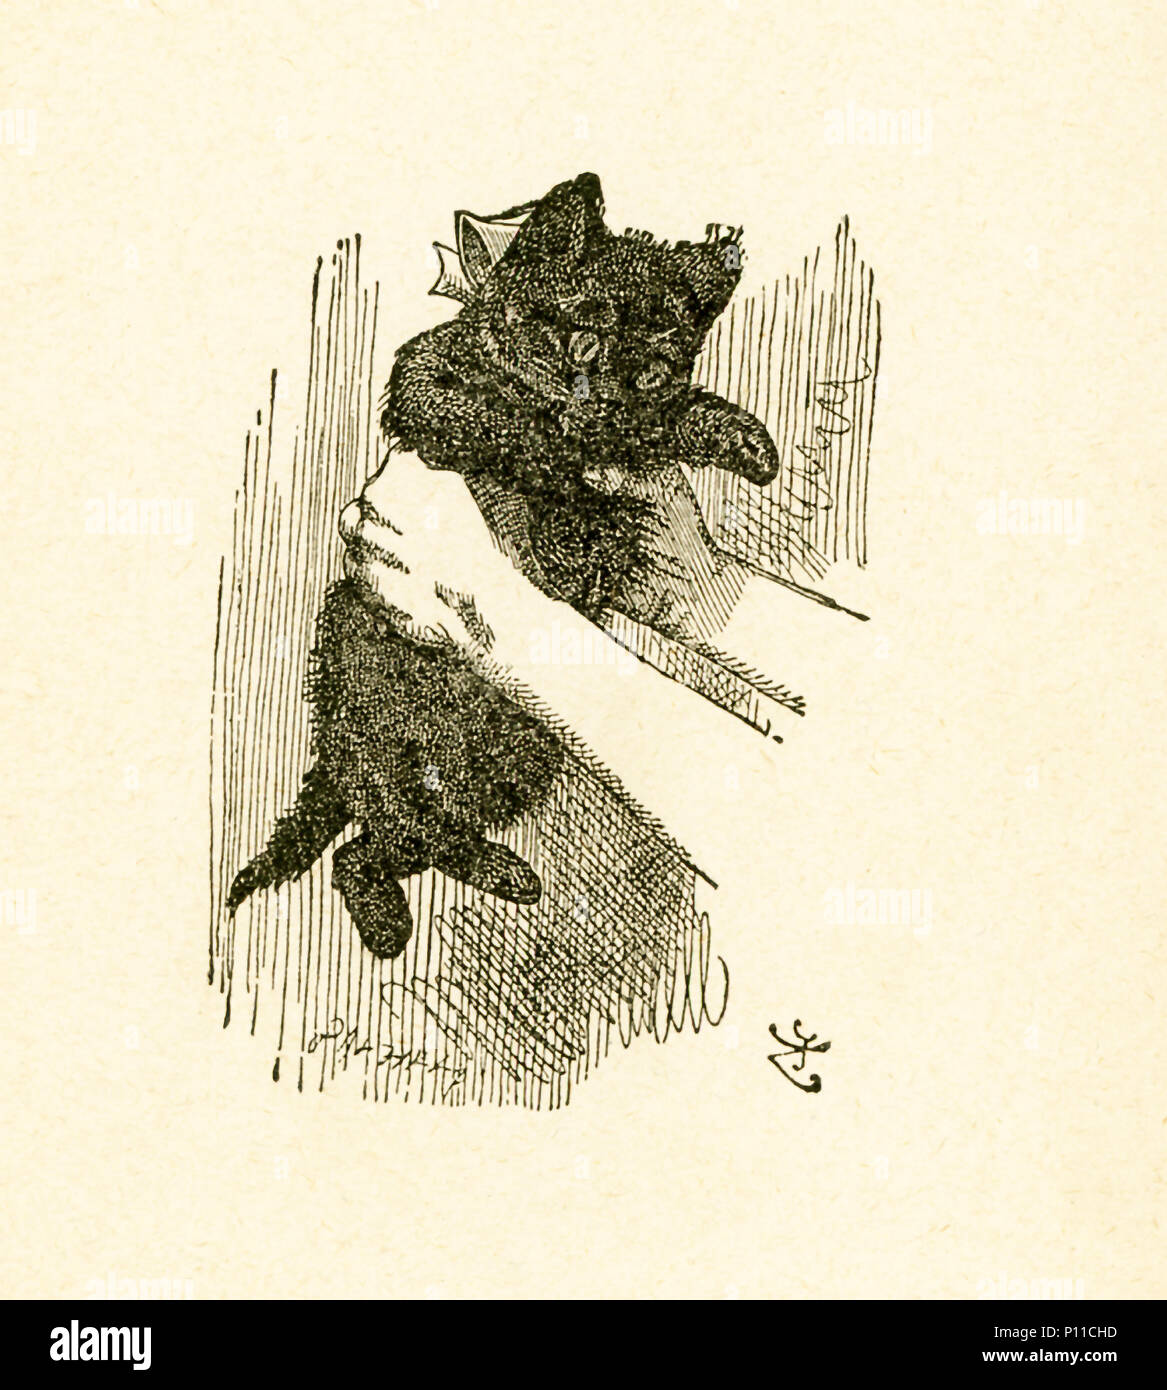 This illustration of Alice holding a red kitten is from 'Through the Looking-Glass and What Alice Found There' by Lewis Carroll (Charles Lutwidge Dodgson), who wrote this novel in 1871 as a sequel to 'Alice's Adventures in Wonderland.' - Stock Image